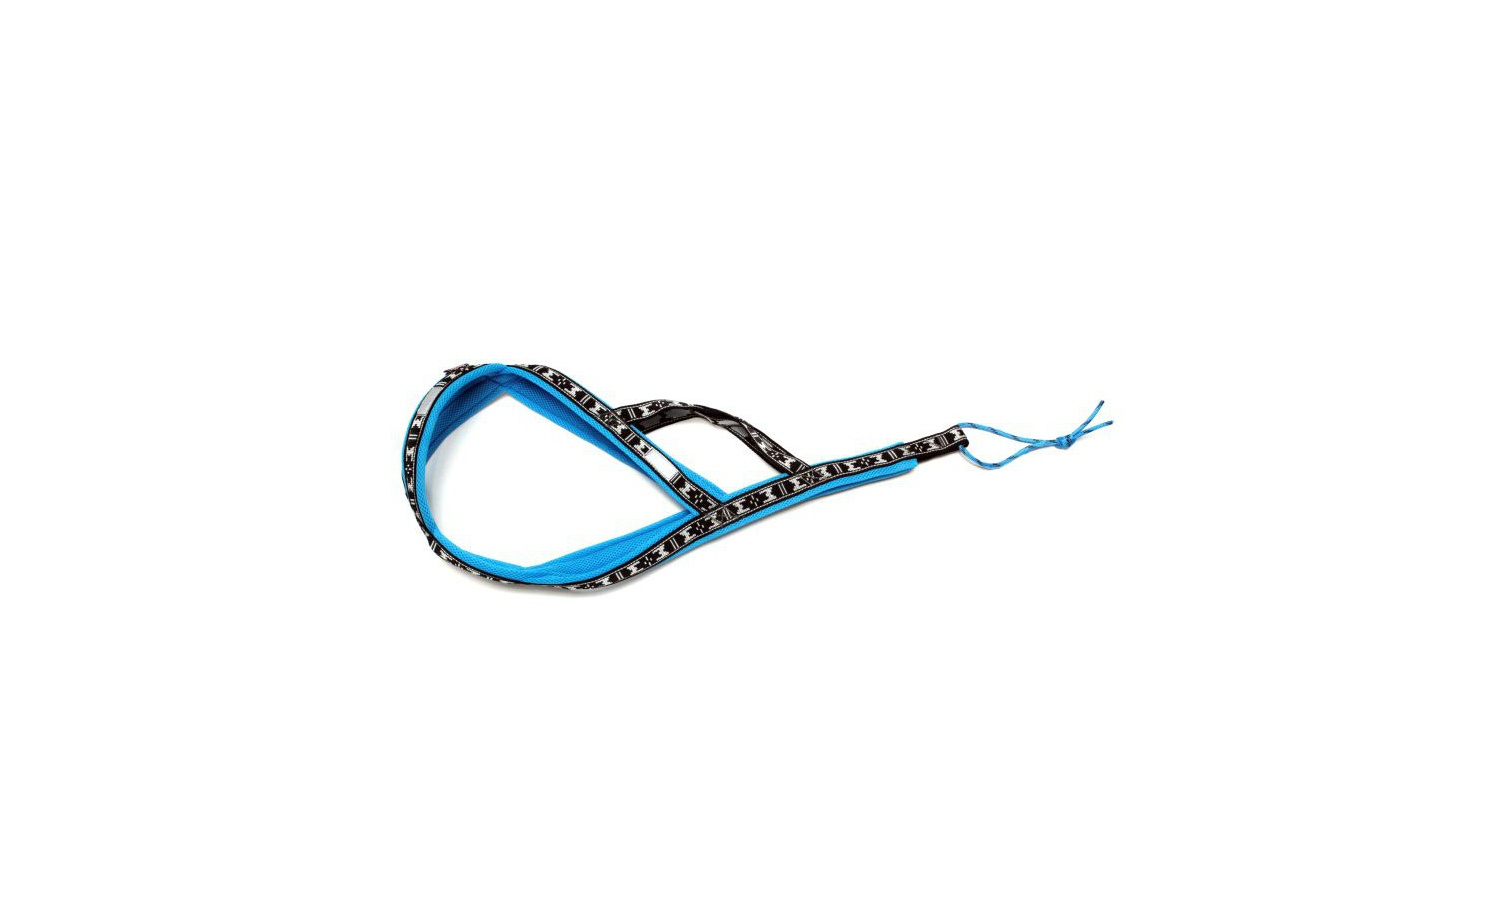 Harness ManMat RUN LONG blue